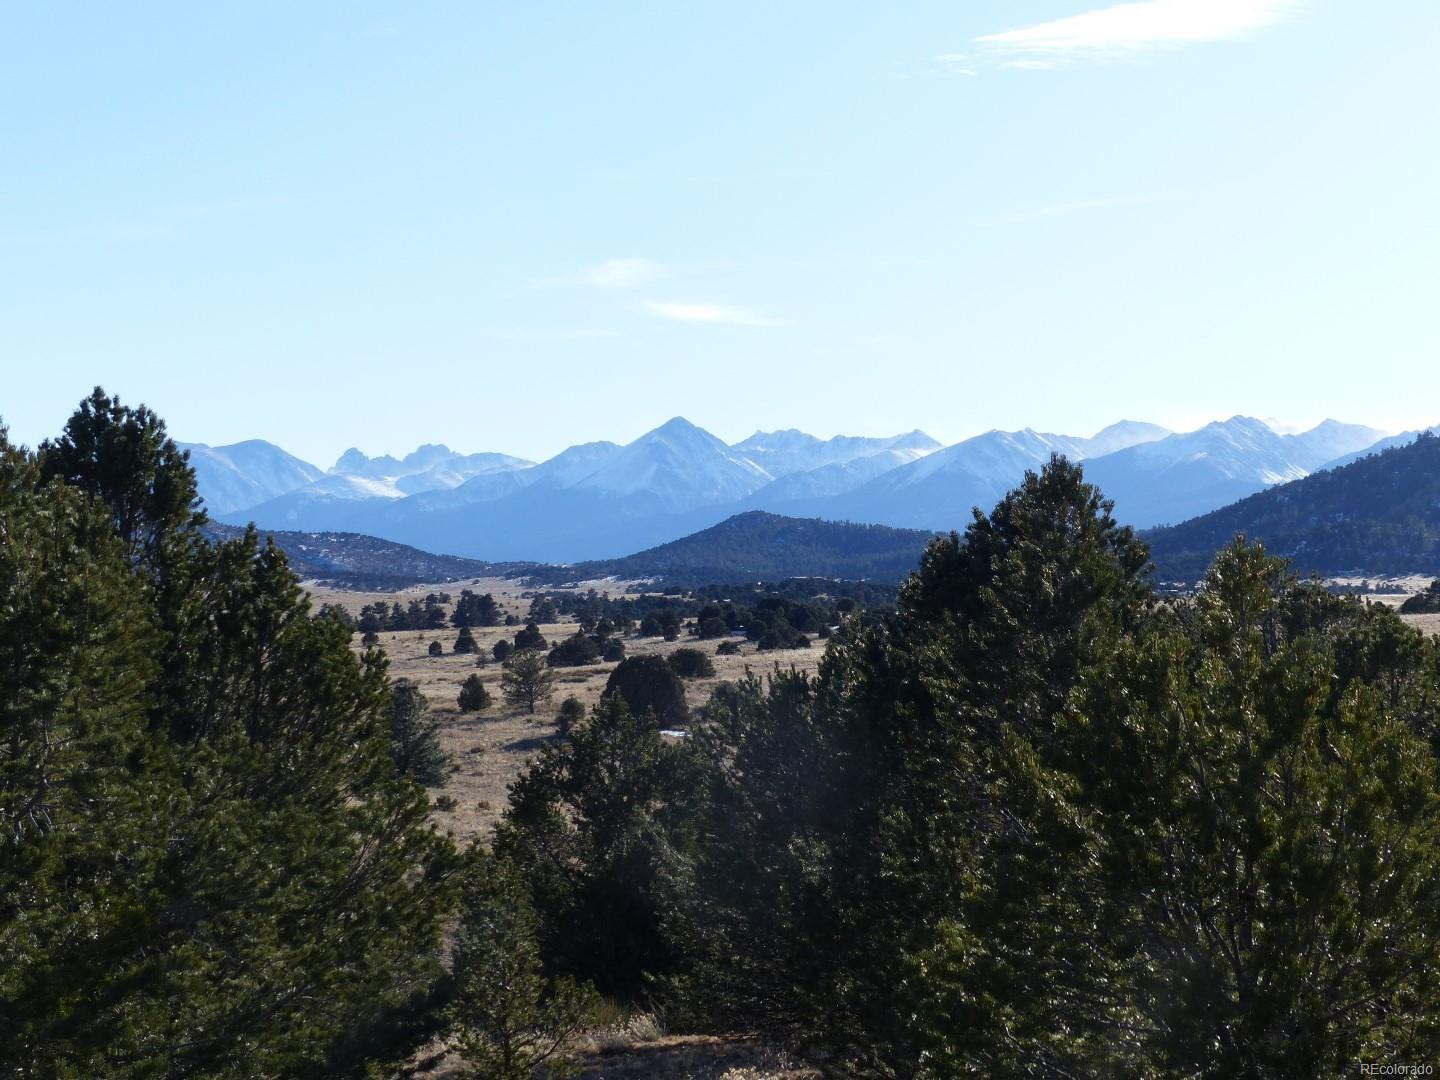 731 County Road 30, Cotopaxi, CO 81223 - Cotopaxi, CO real estate listing